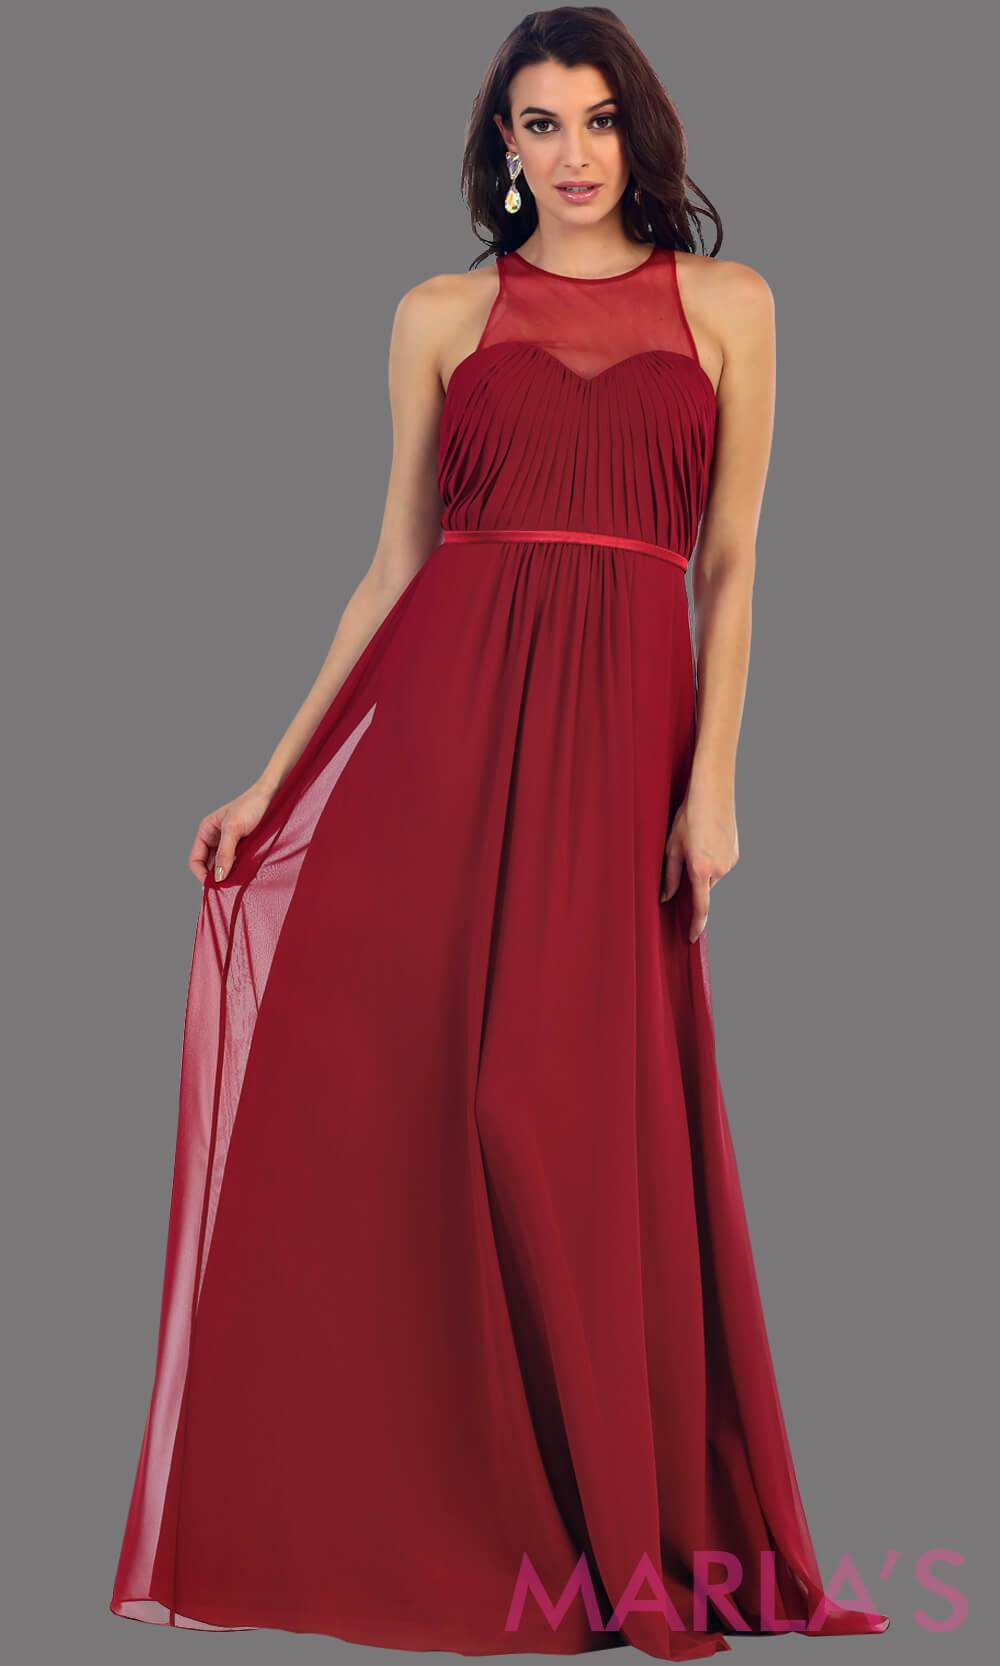 Long burgandy flowy dress with high neck mesh neckline. This is perfect for your next party, or wedding guest dress, as a prom dress. This dress is also available in plus size